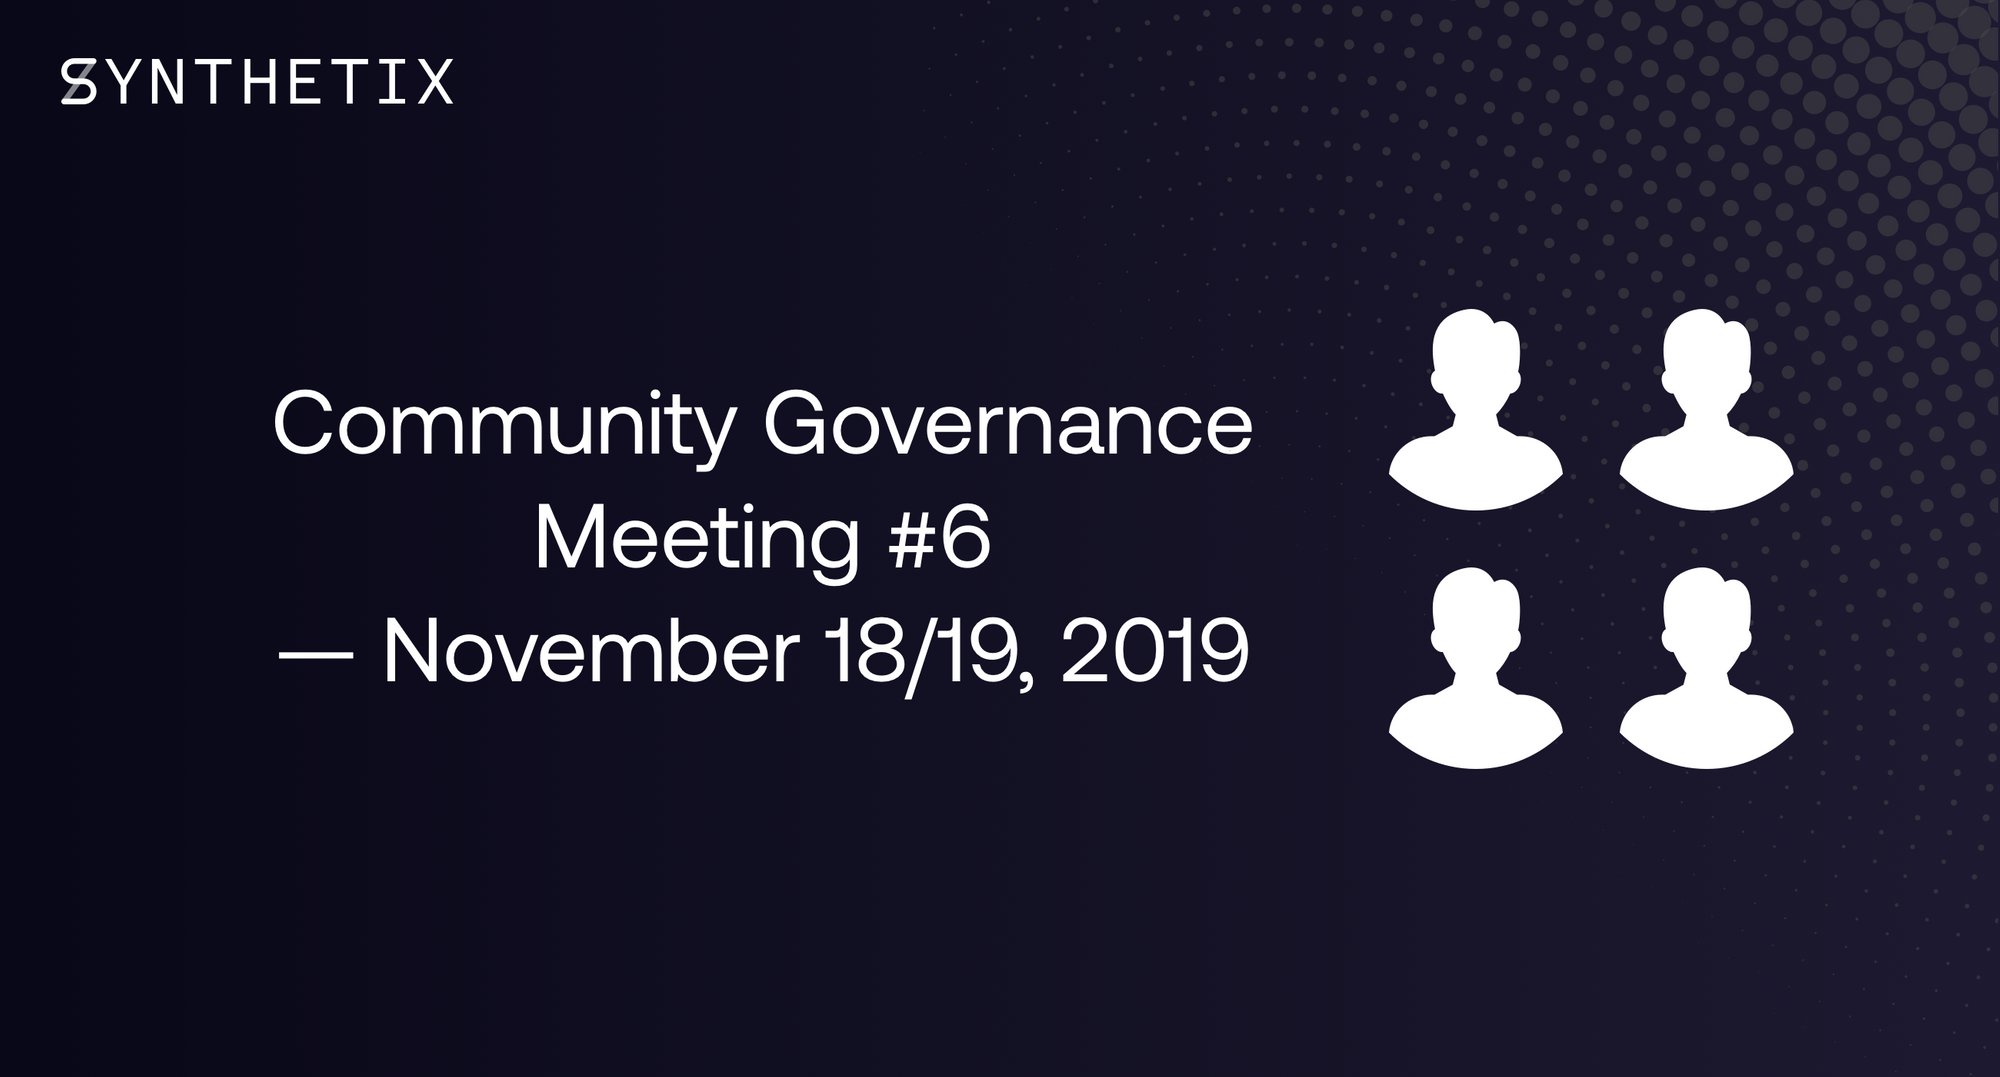 Join us on November 18/19 for the next community governance call!